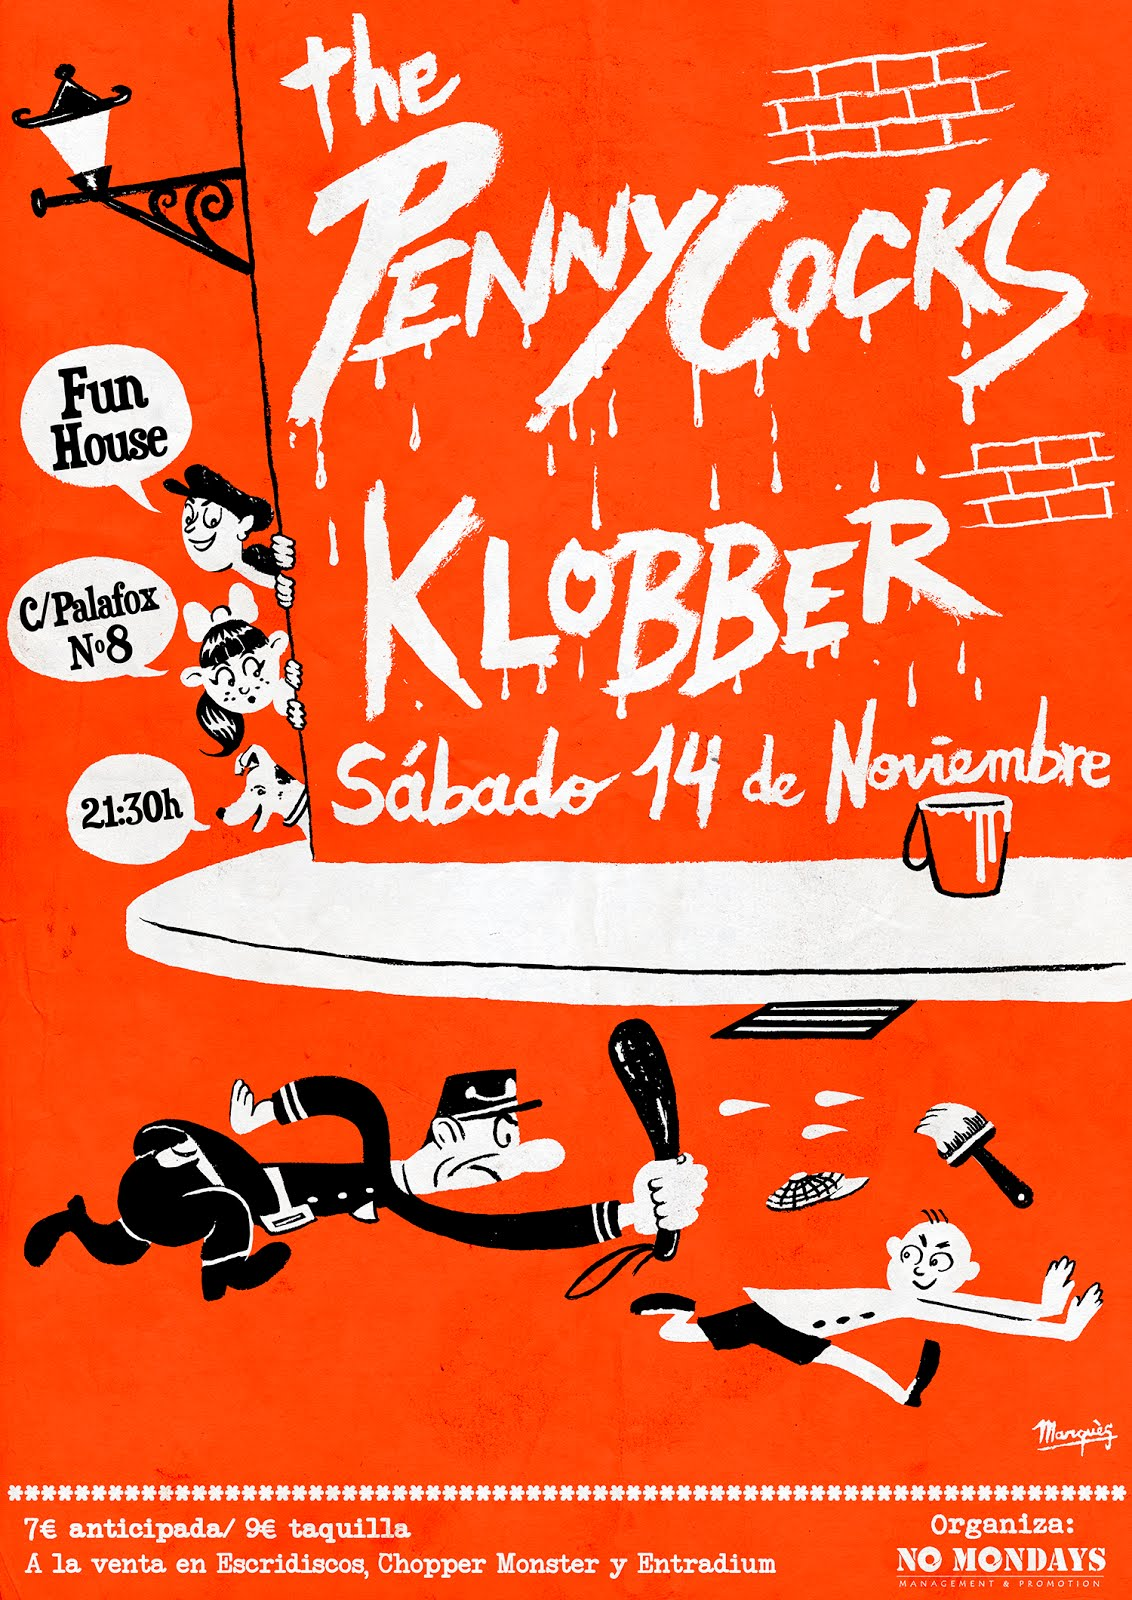 The PennyCocks + Klobber - 14 Noviembre - Fun House